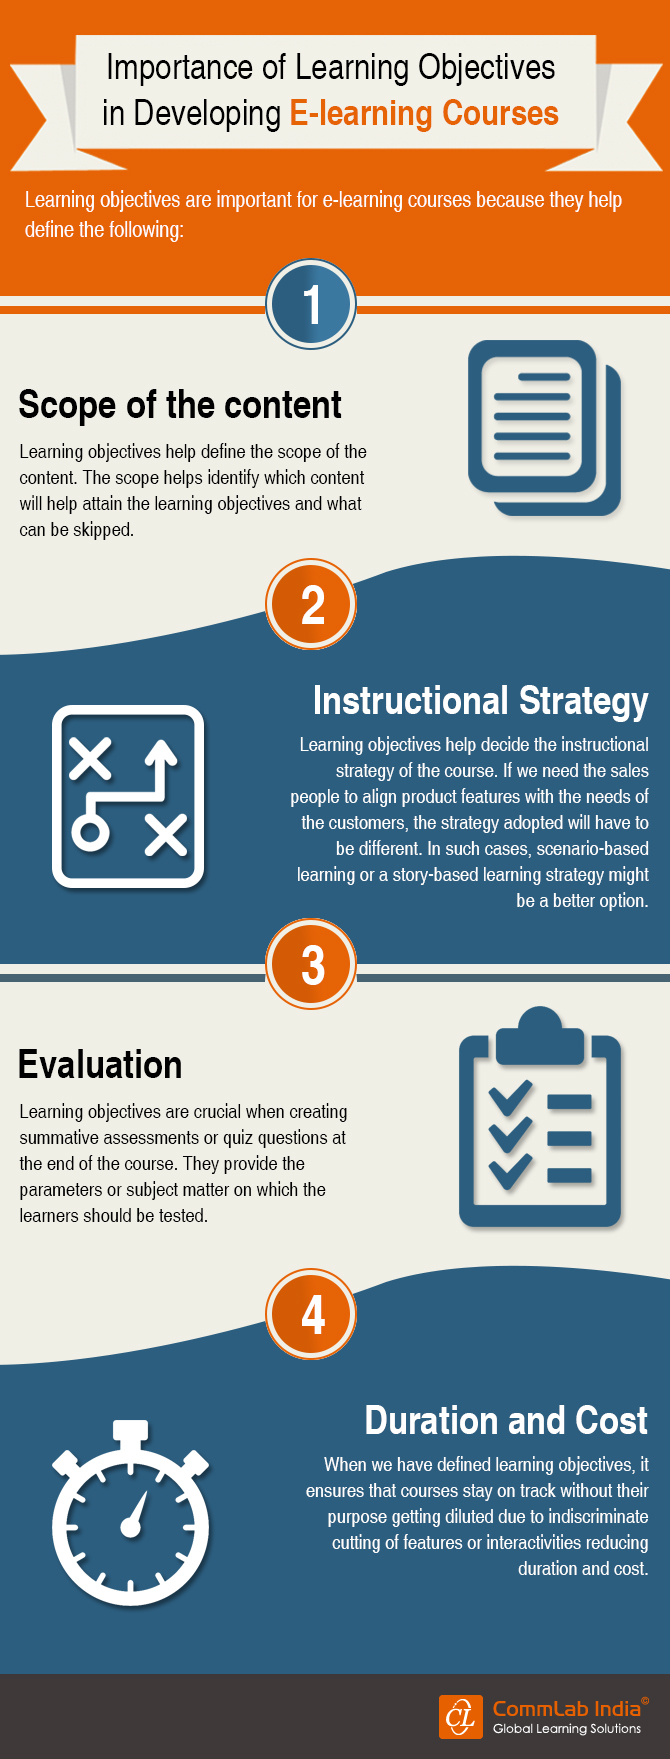 Importance of Learning Objectives in Developing E-learning Courses [Infographic]